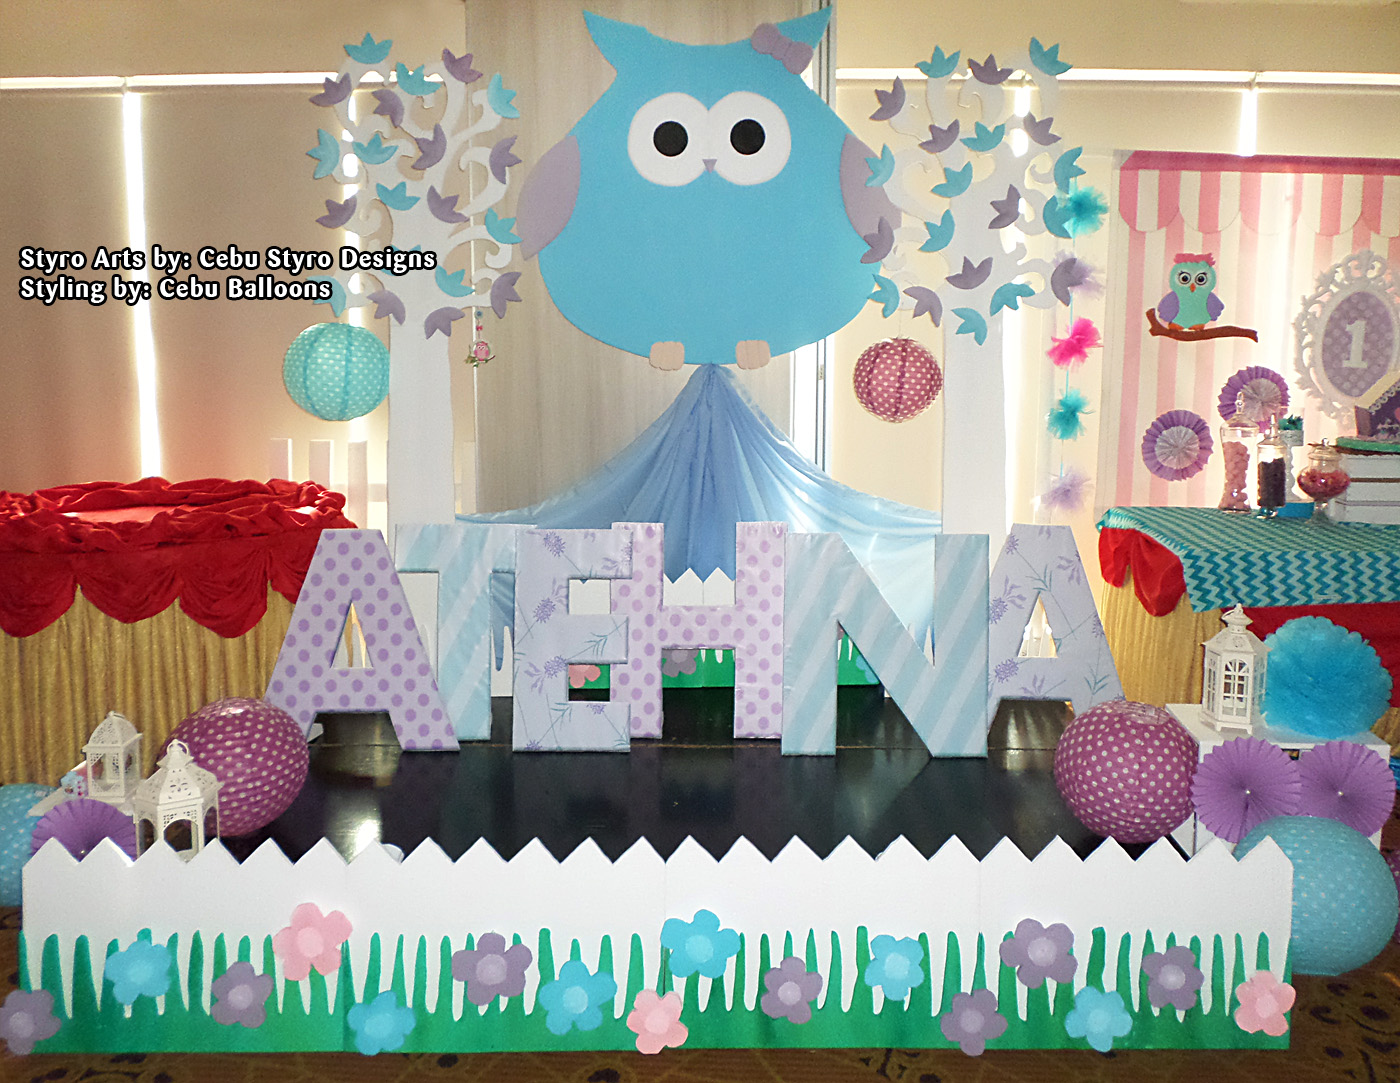 Owl Balloon Centerpiece Ideas : Choi city cebu balloons and party supplies